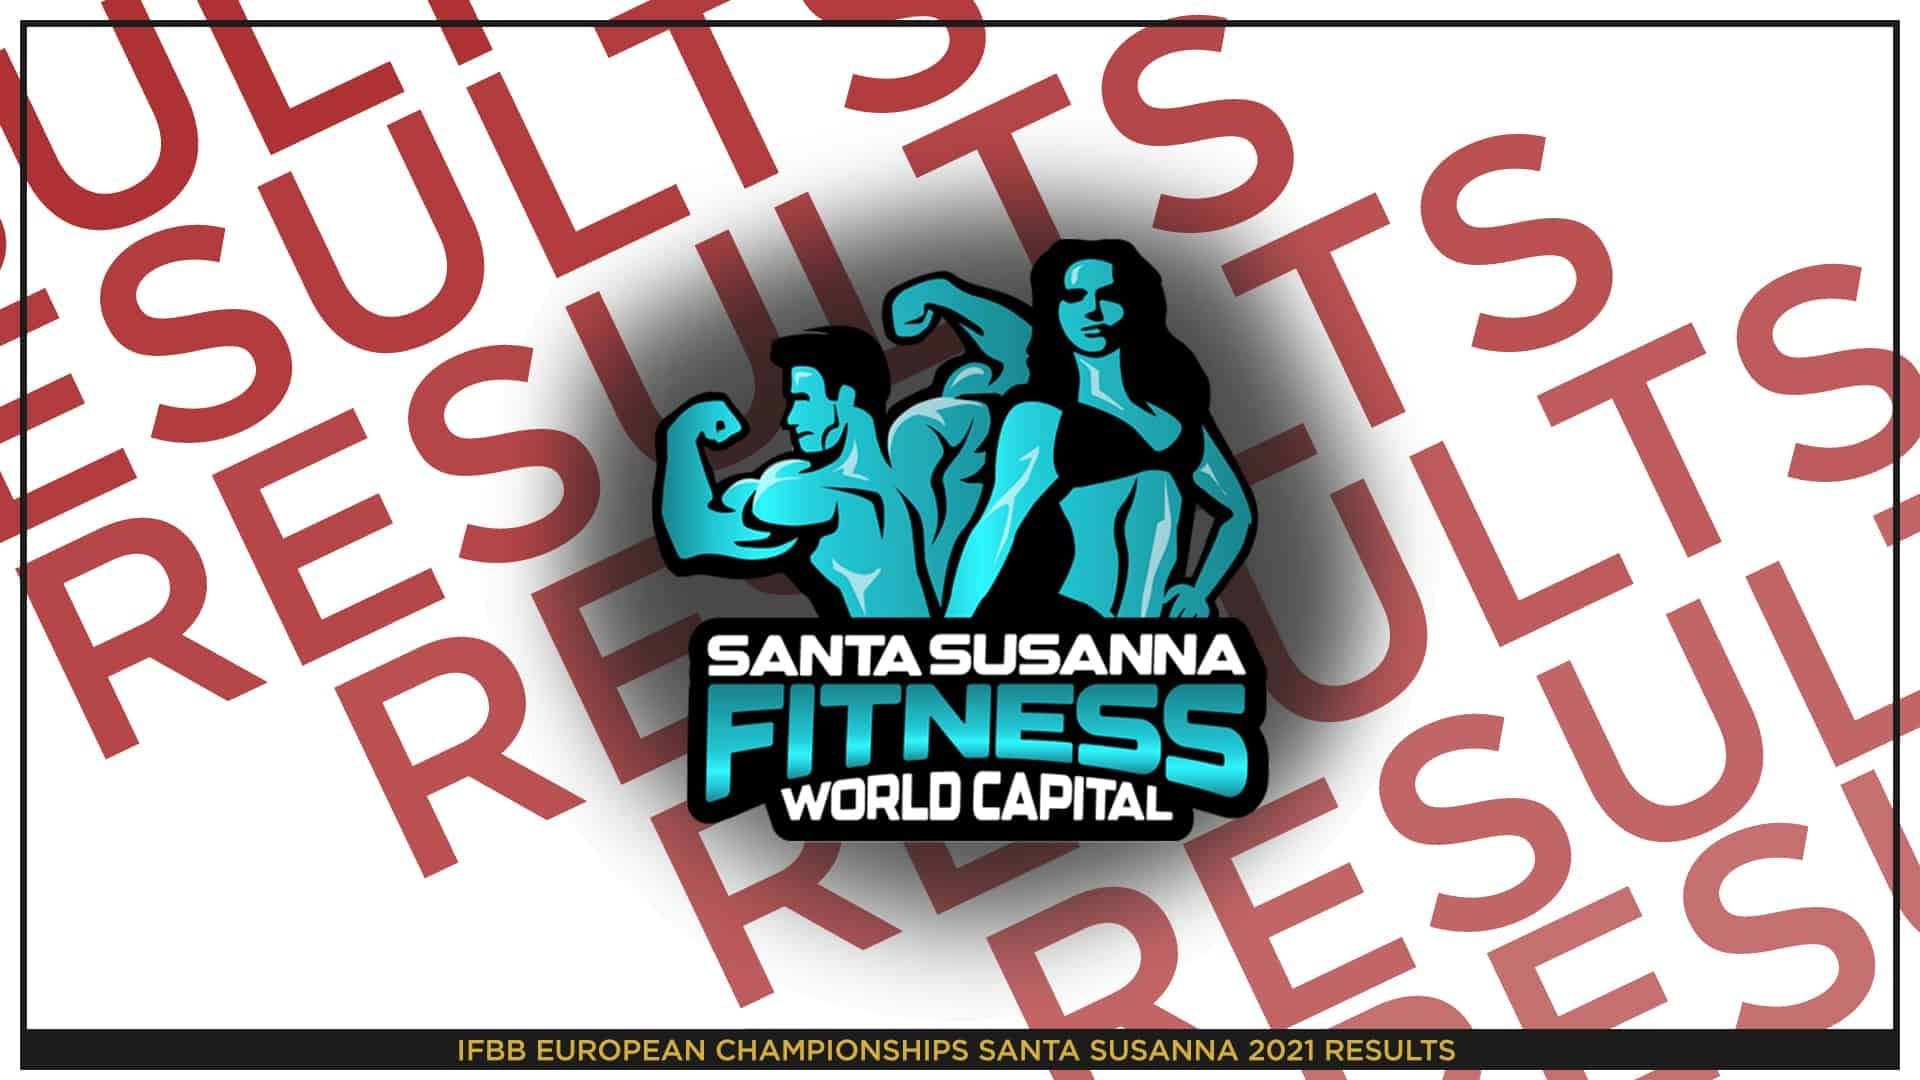 IFBB European Championships Santa Susanna 2021 Results, on a white background with red letters ''RESULTS''